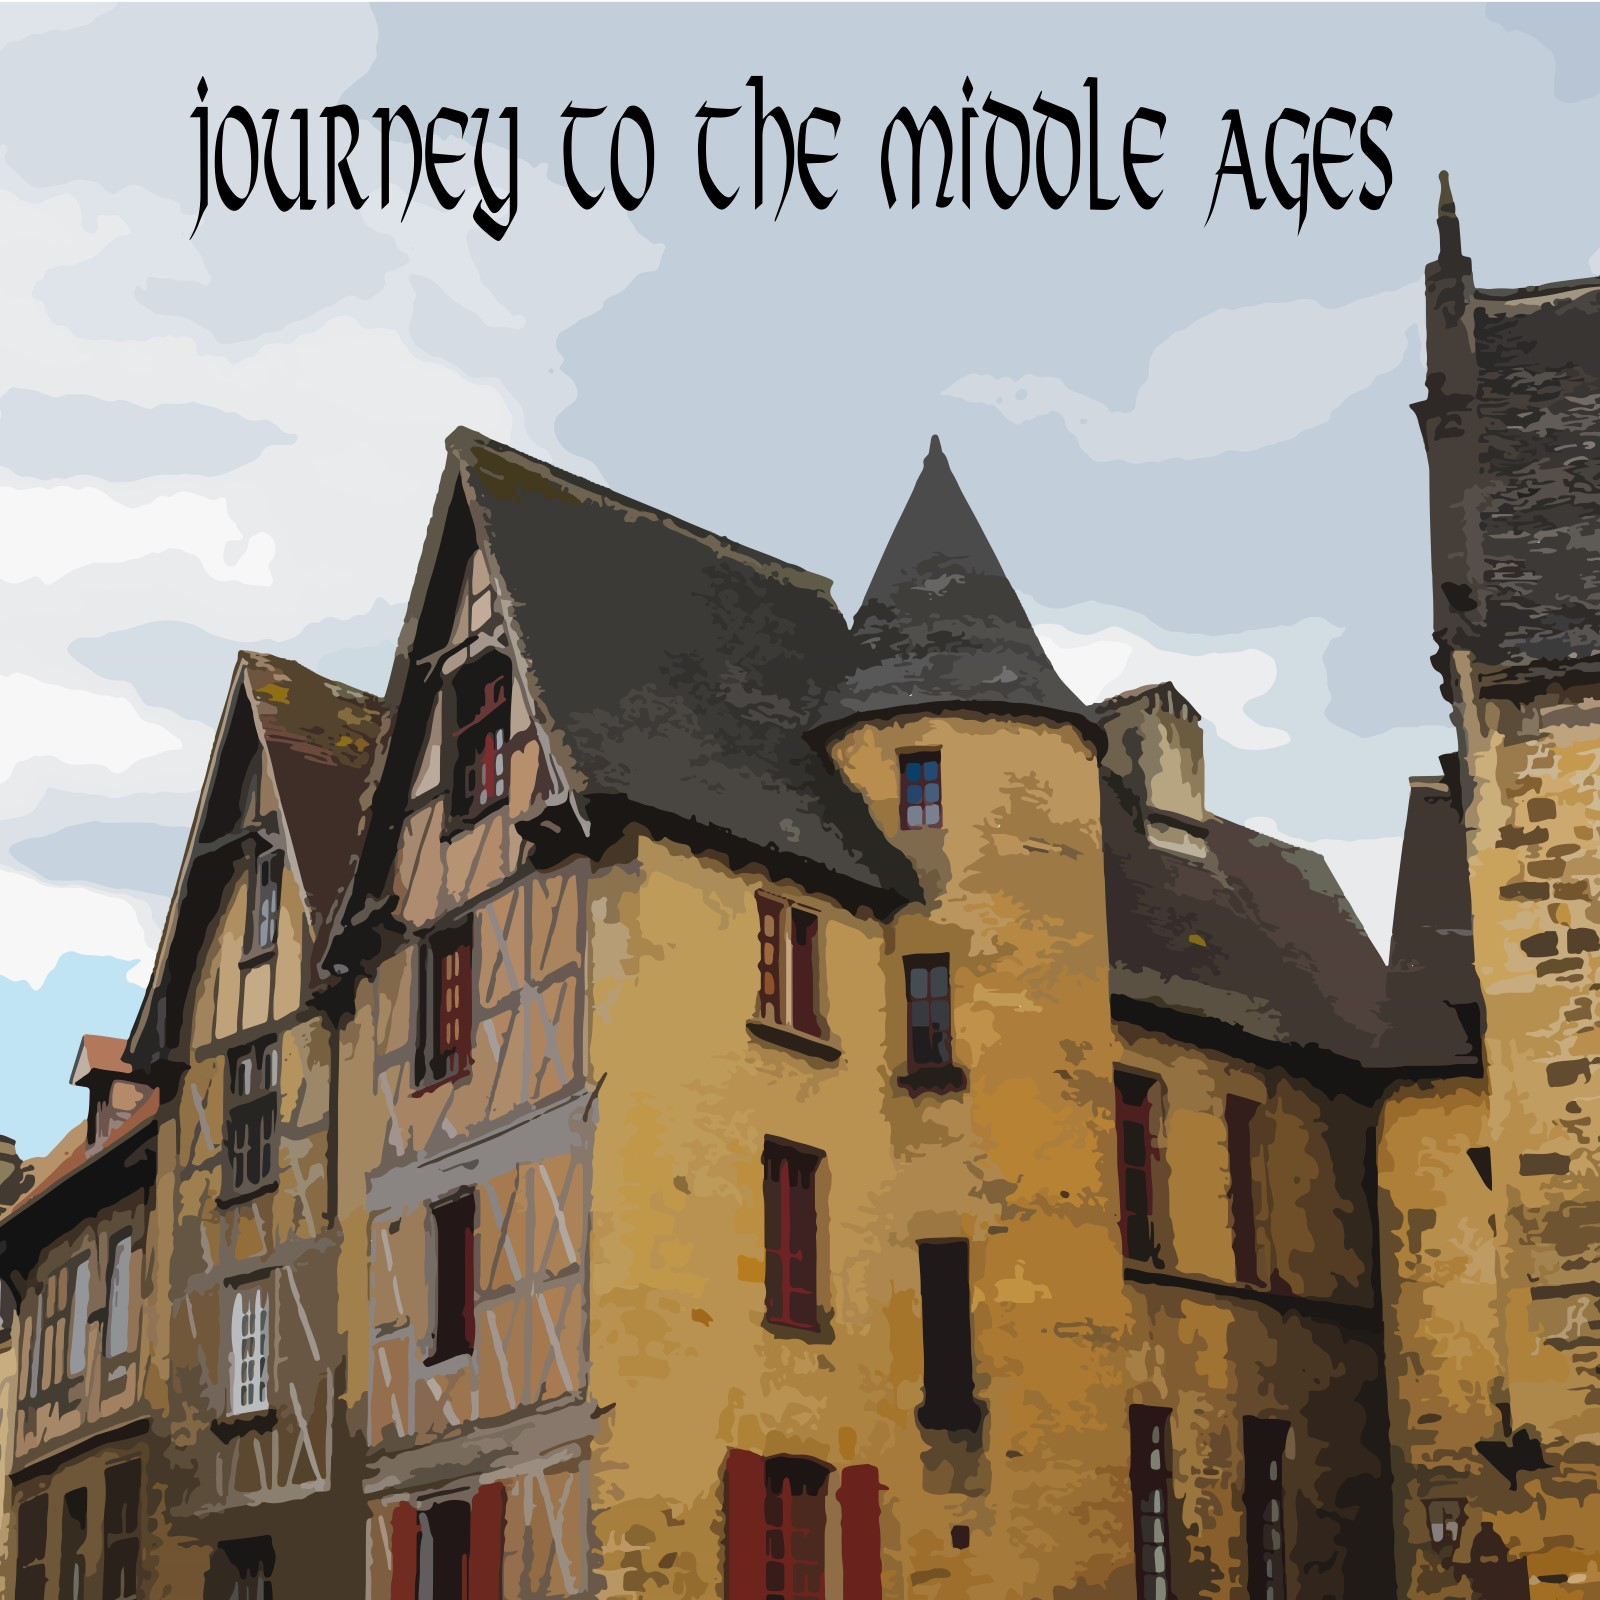 3. Journey to the Middle Ages - A five-piece collection containing medieval/celtic inspired songs.